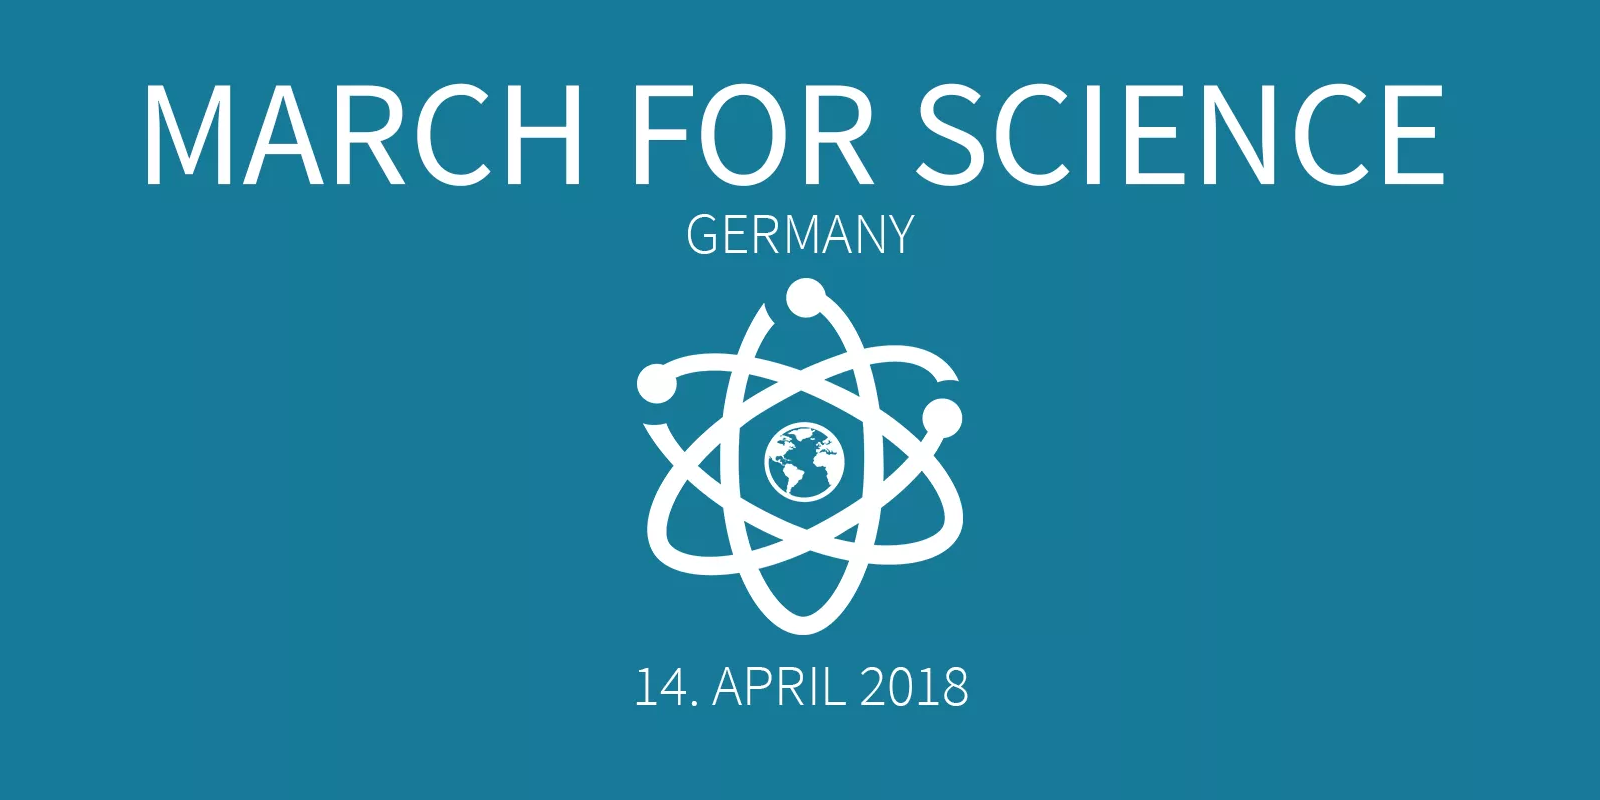 March for Science Germany